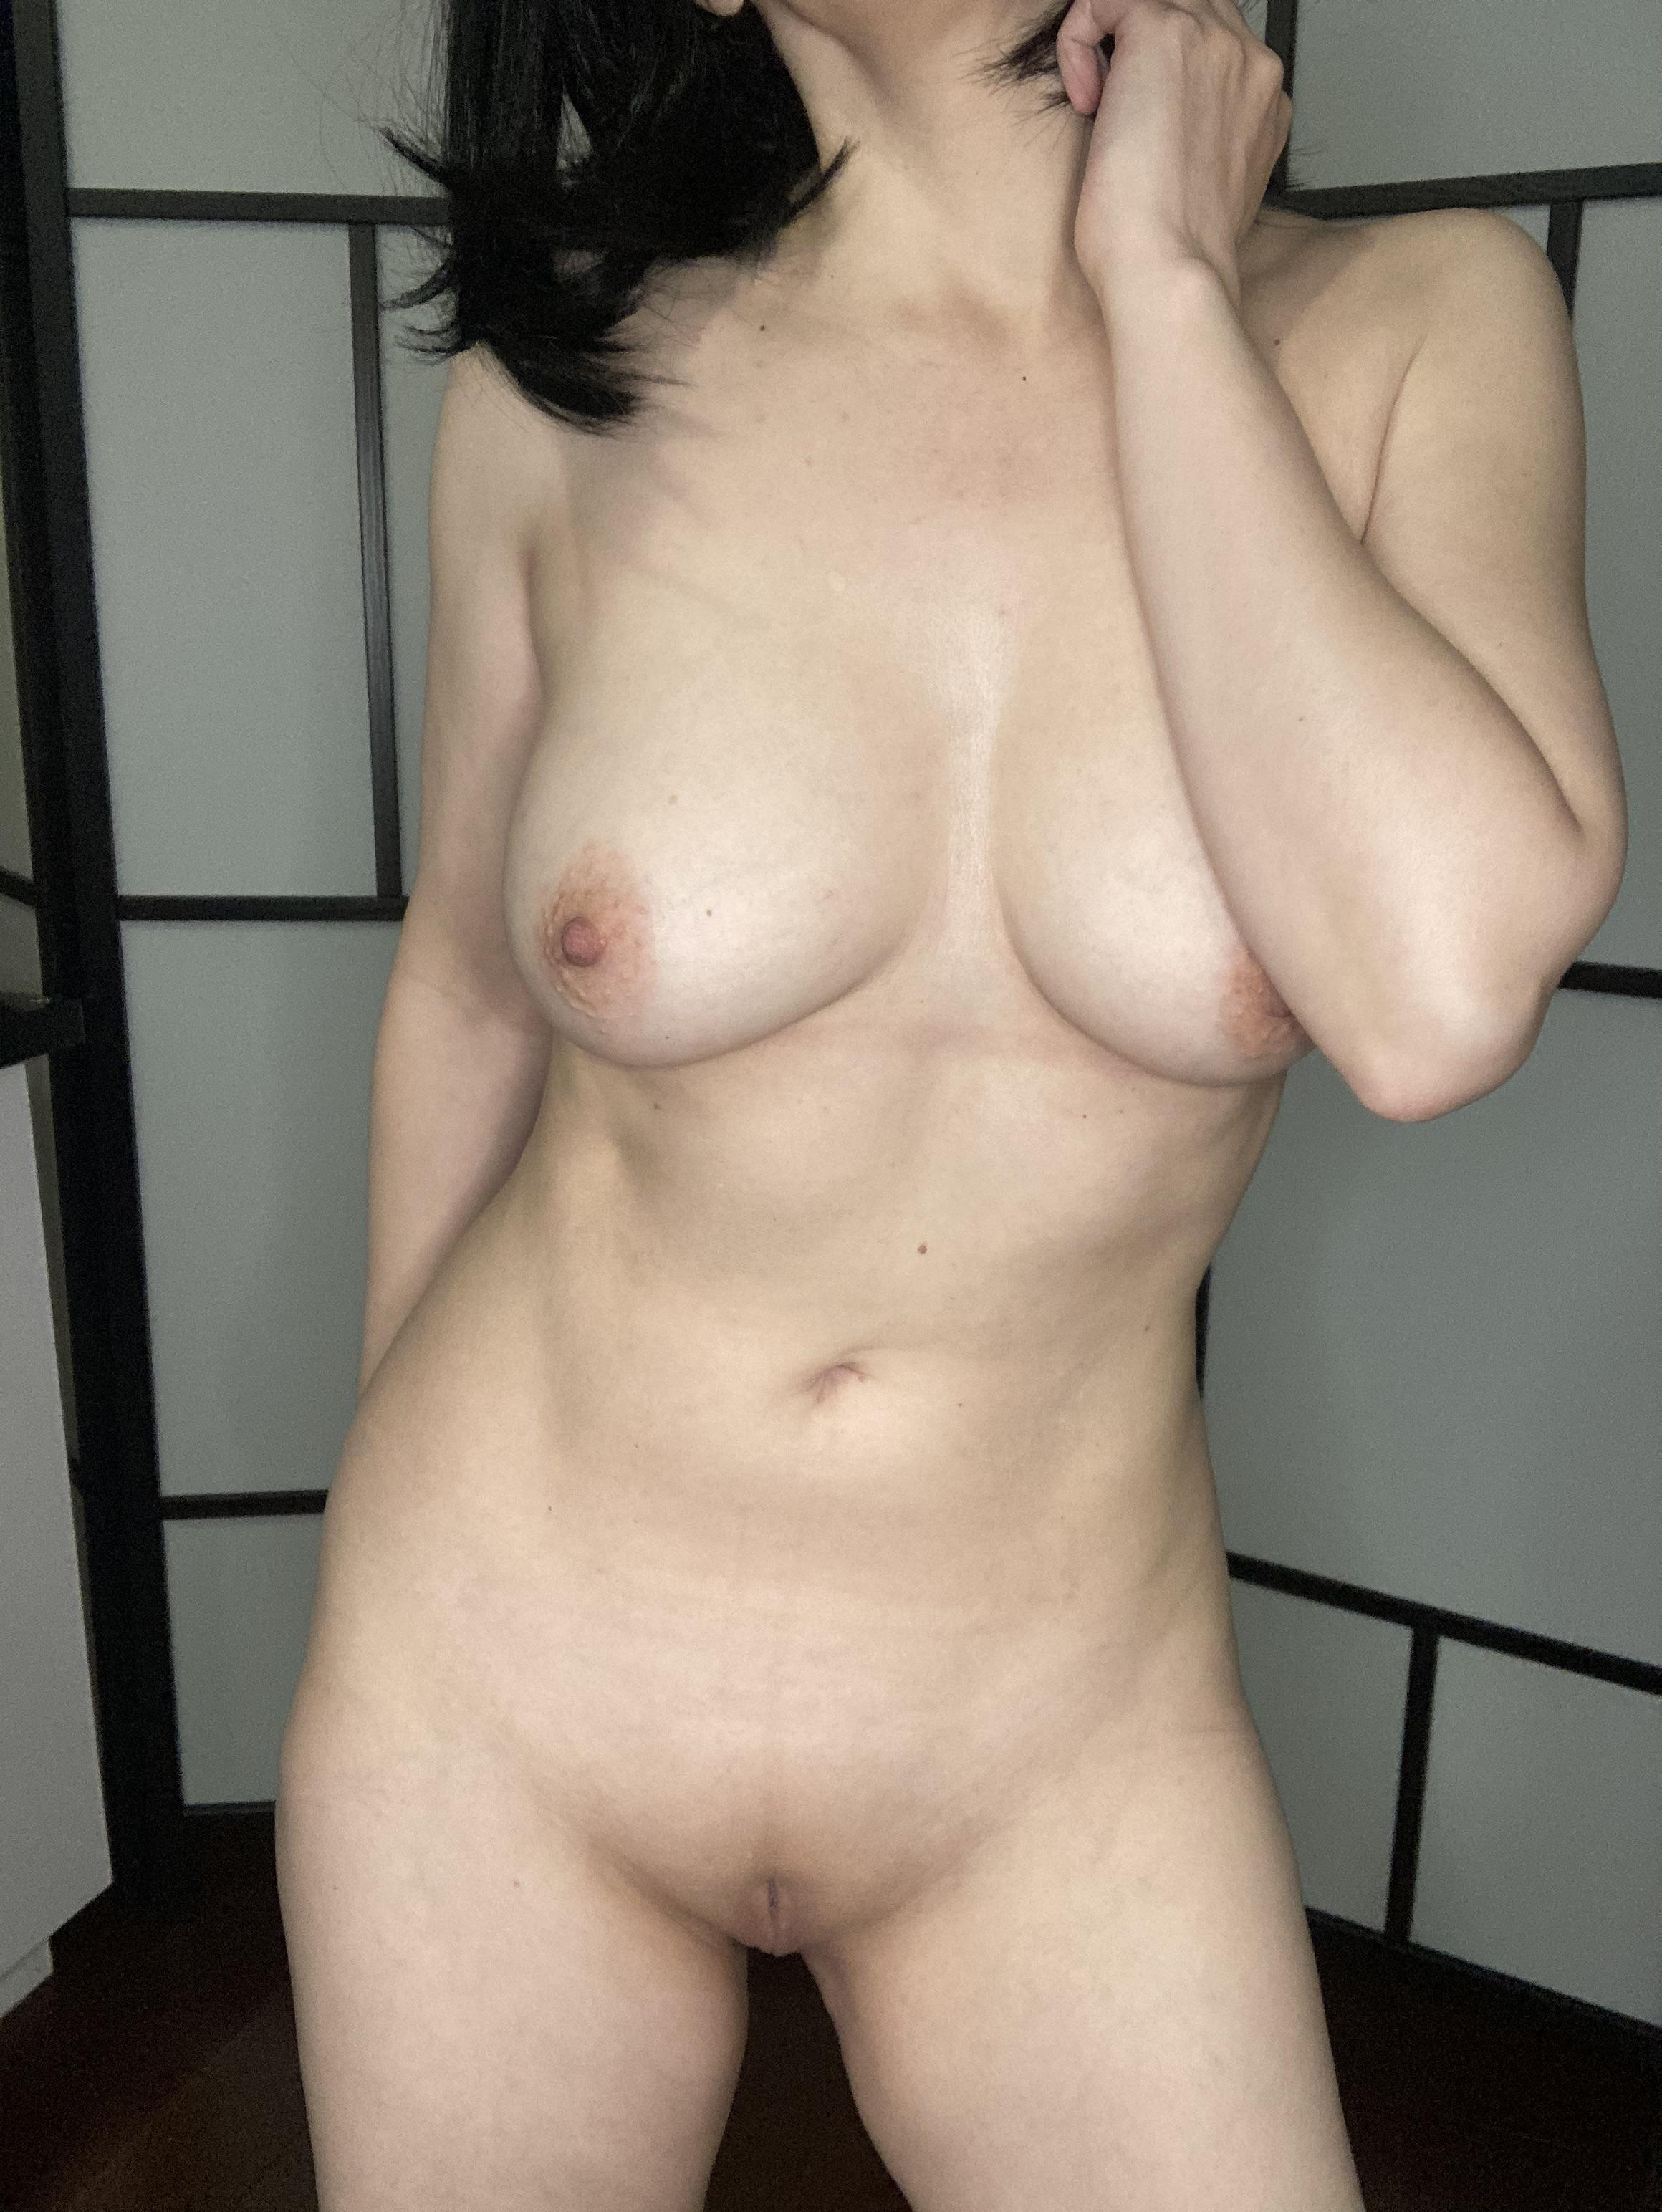 My Pussy Needs Stretching